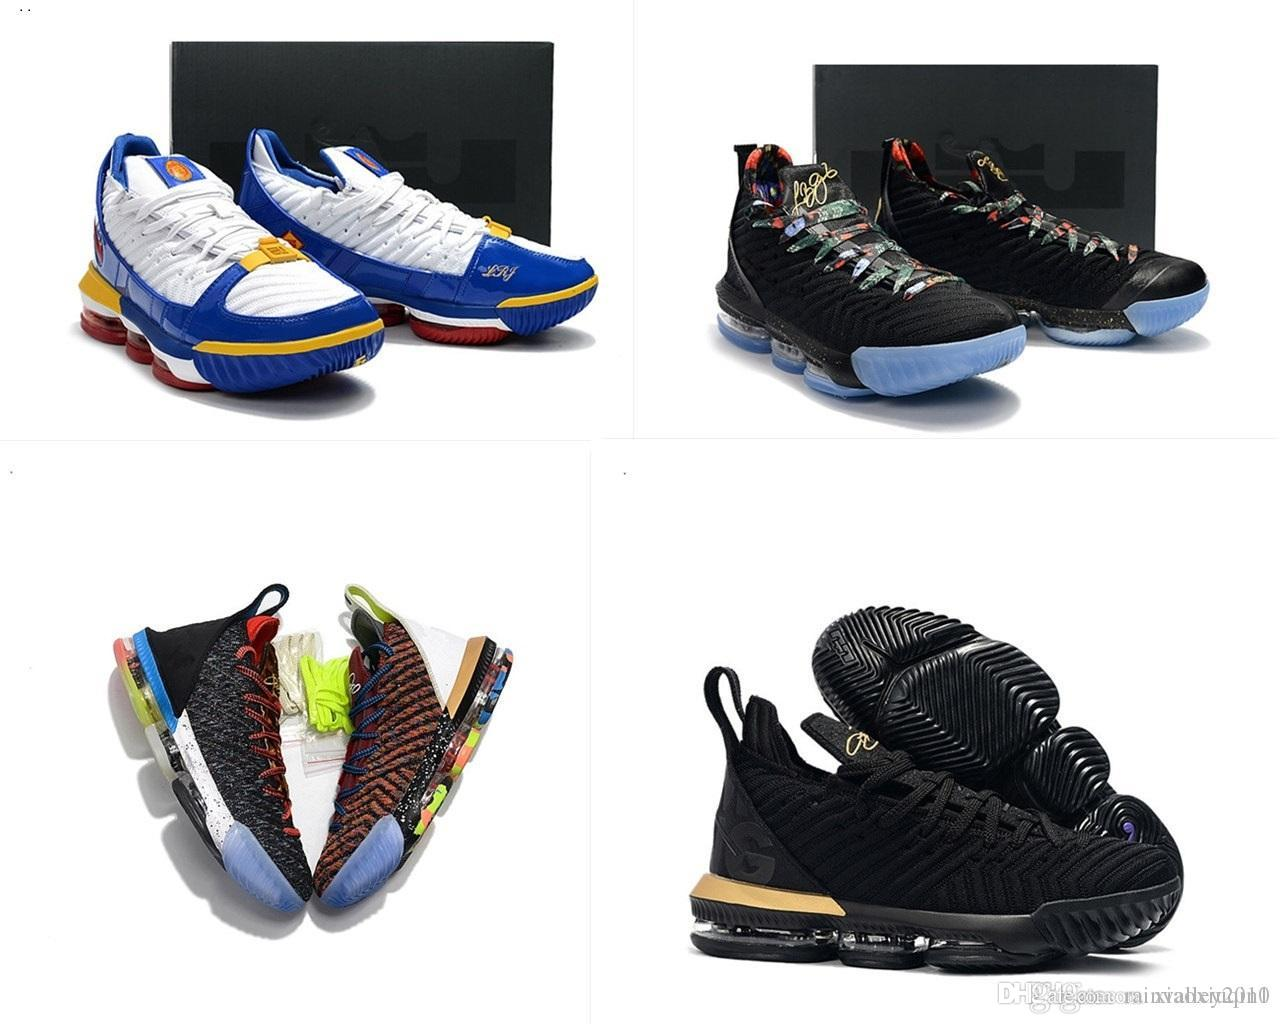 4499349611581 2019 New Lebron 16 XVI Basketball Shoes Mens For Sale Retro Lebrons ...